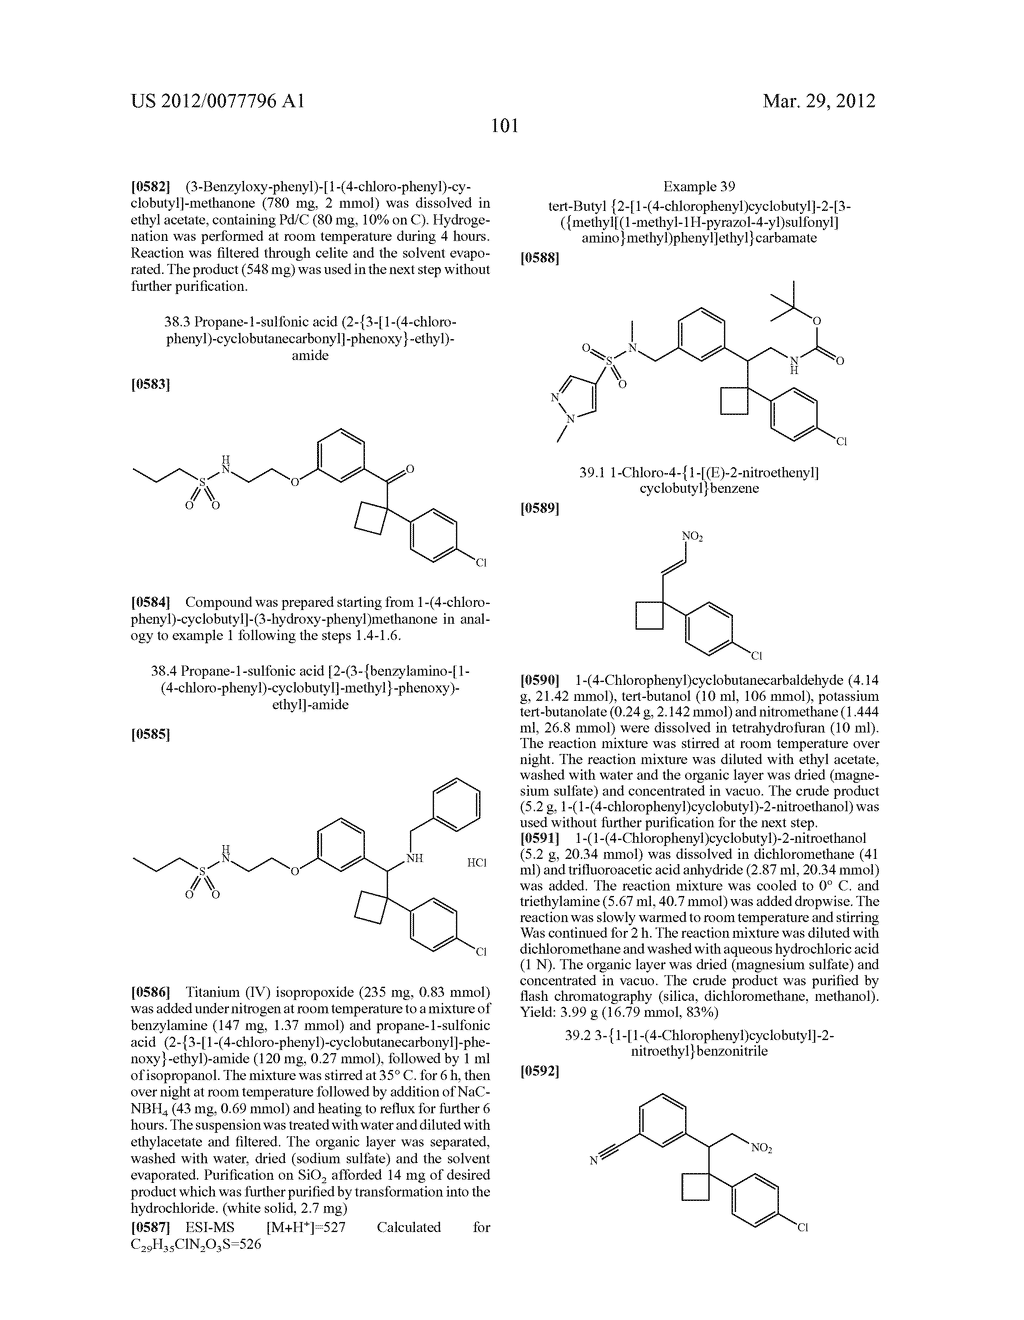 PHENALKYLAMINE DERIVATIVES, PHARMACEUTICAL COMPOSITIONS CONTAINING THEM,     AND THEIR USE IN THERAPY - diagram, schematic, and image 102